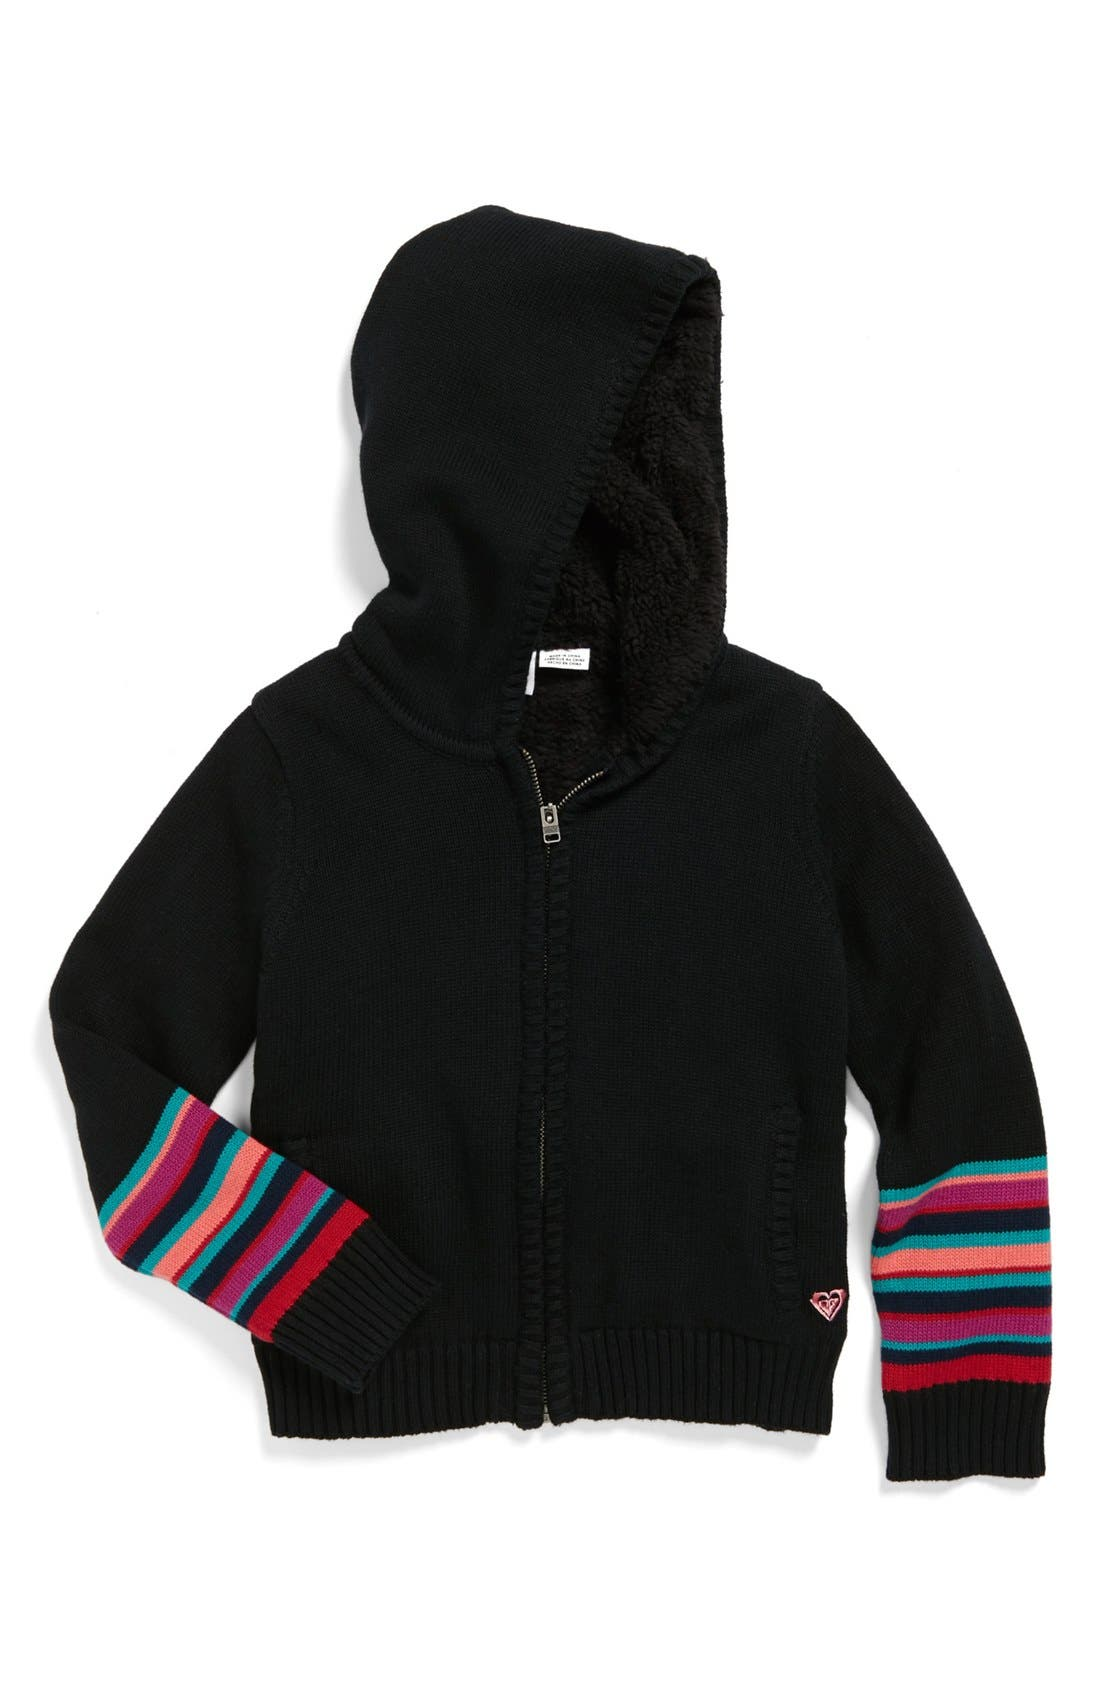 Main Image - Roxy 'Wild Awake' Full Zip Hoodie Sweater (Little Girls)